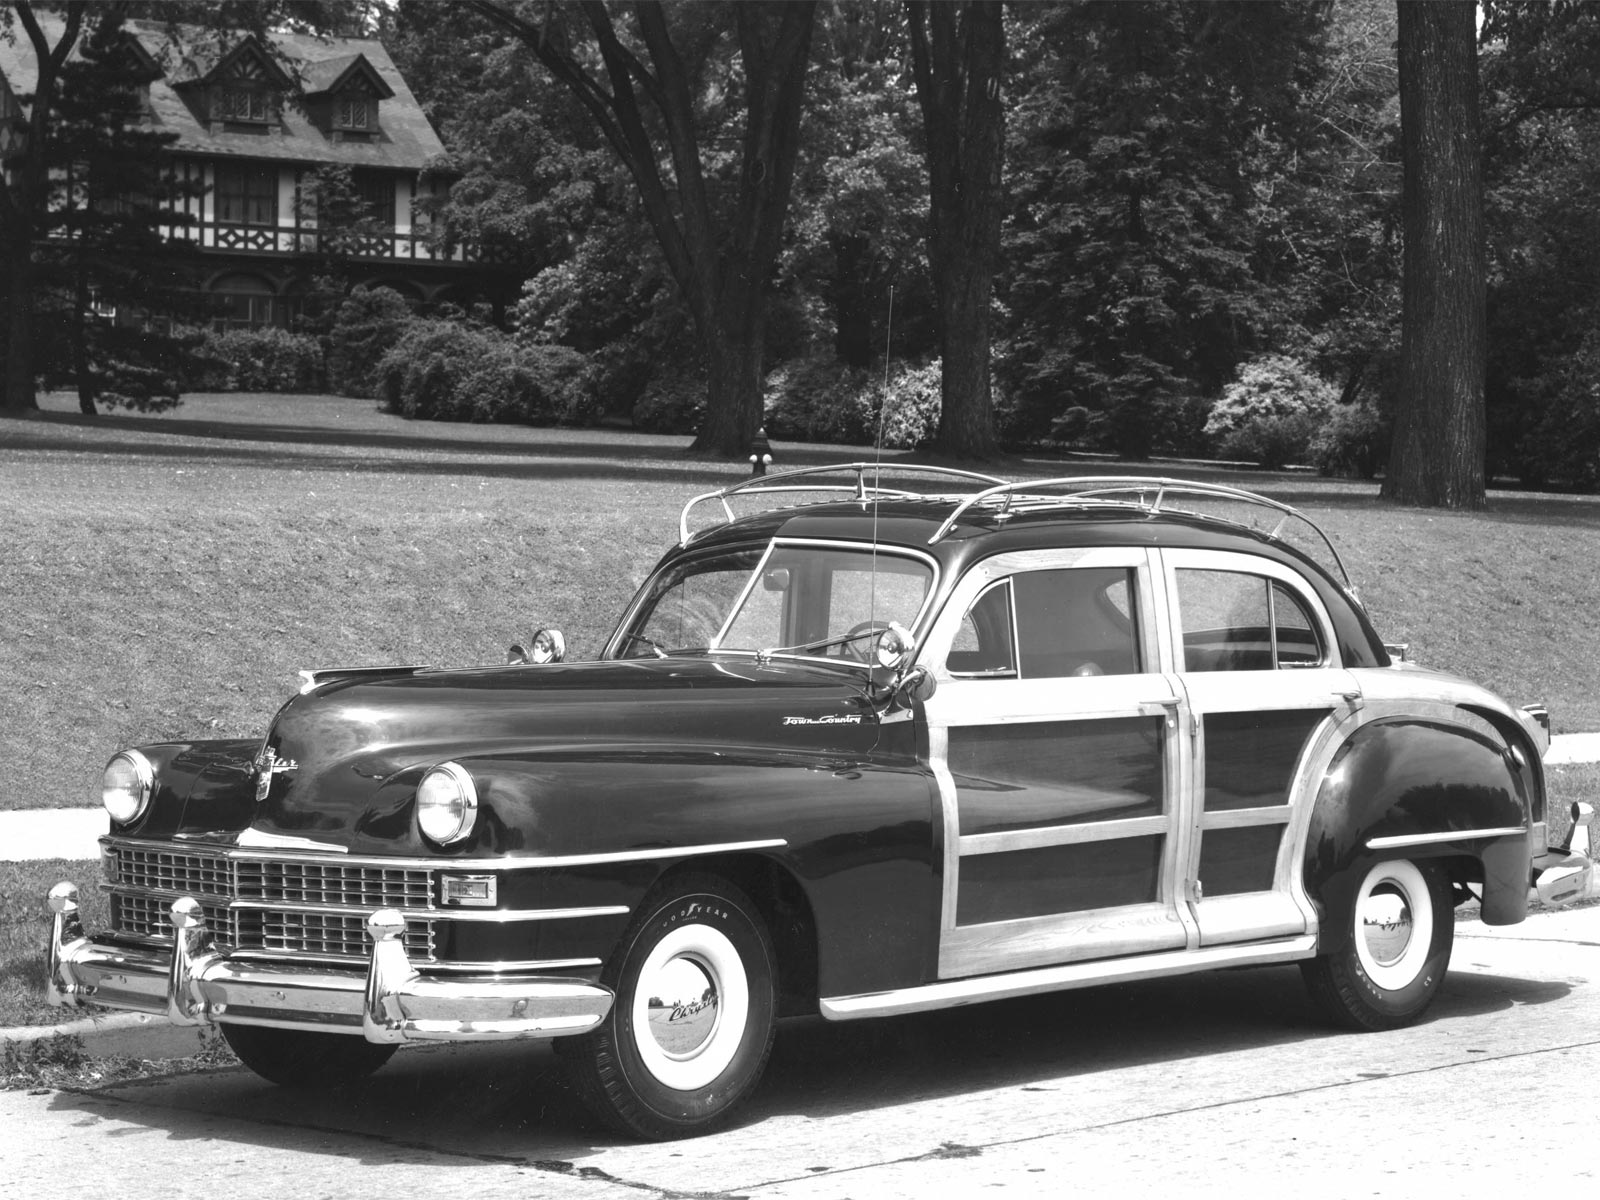 1941 1950 chrysler town country sedan autoguru. Black Bedroom Furniture Sets. Home Design Ideas